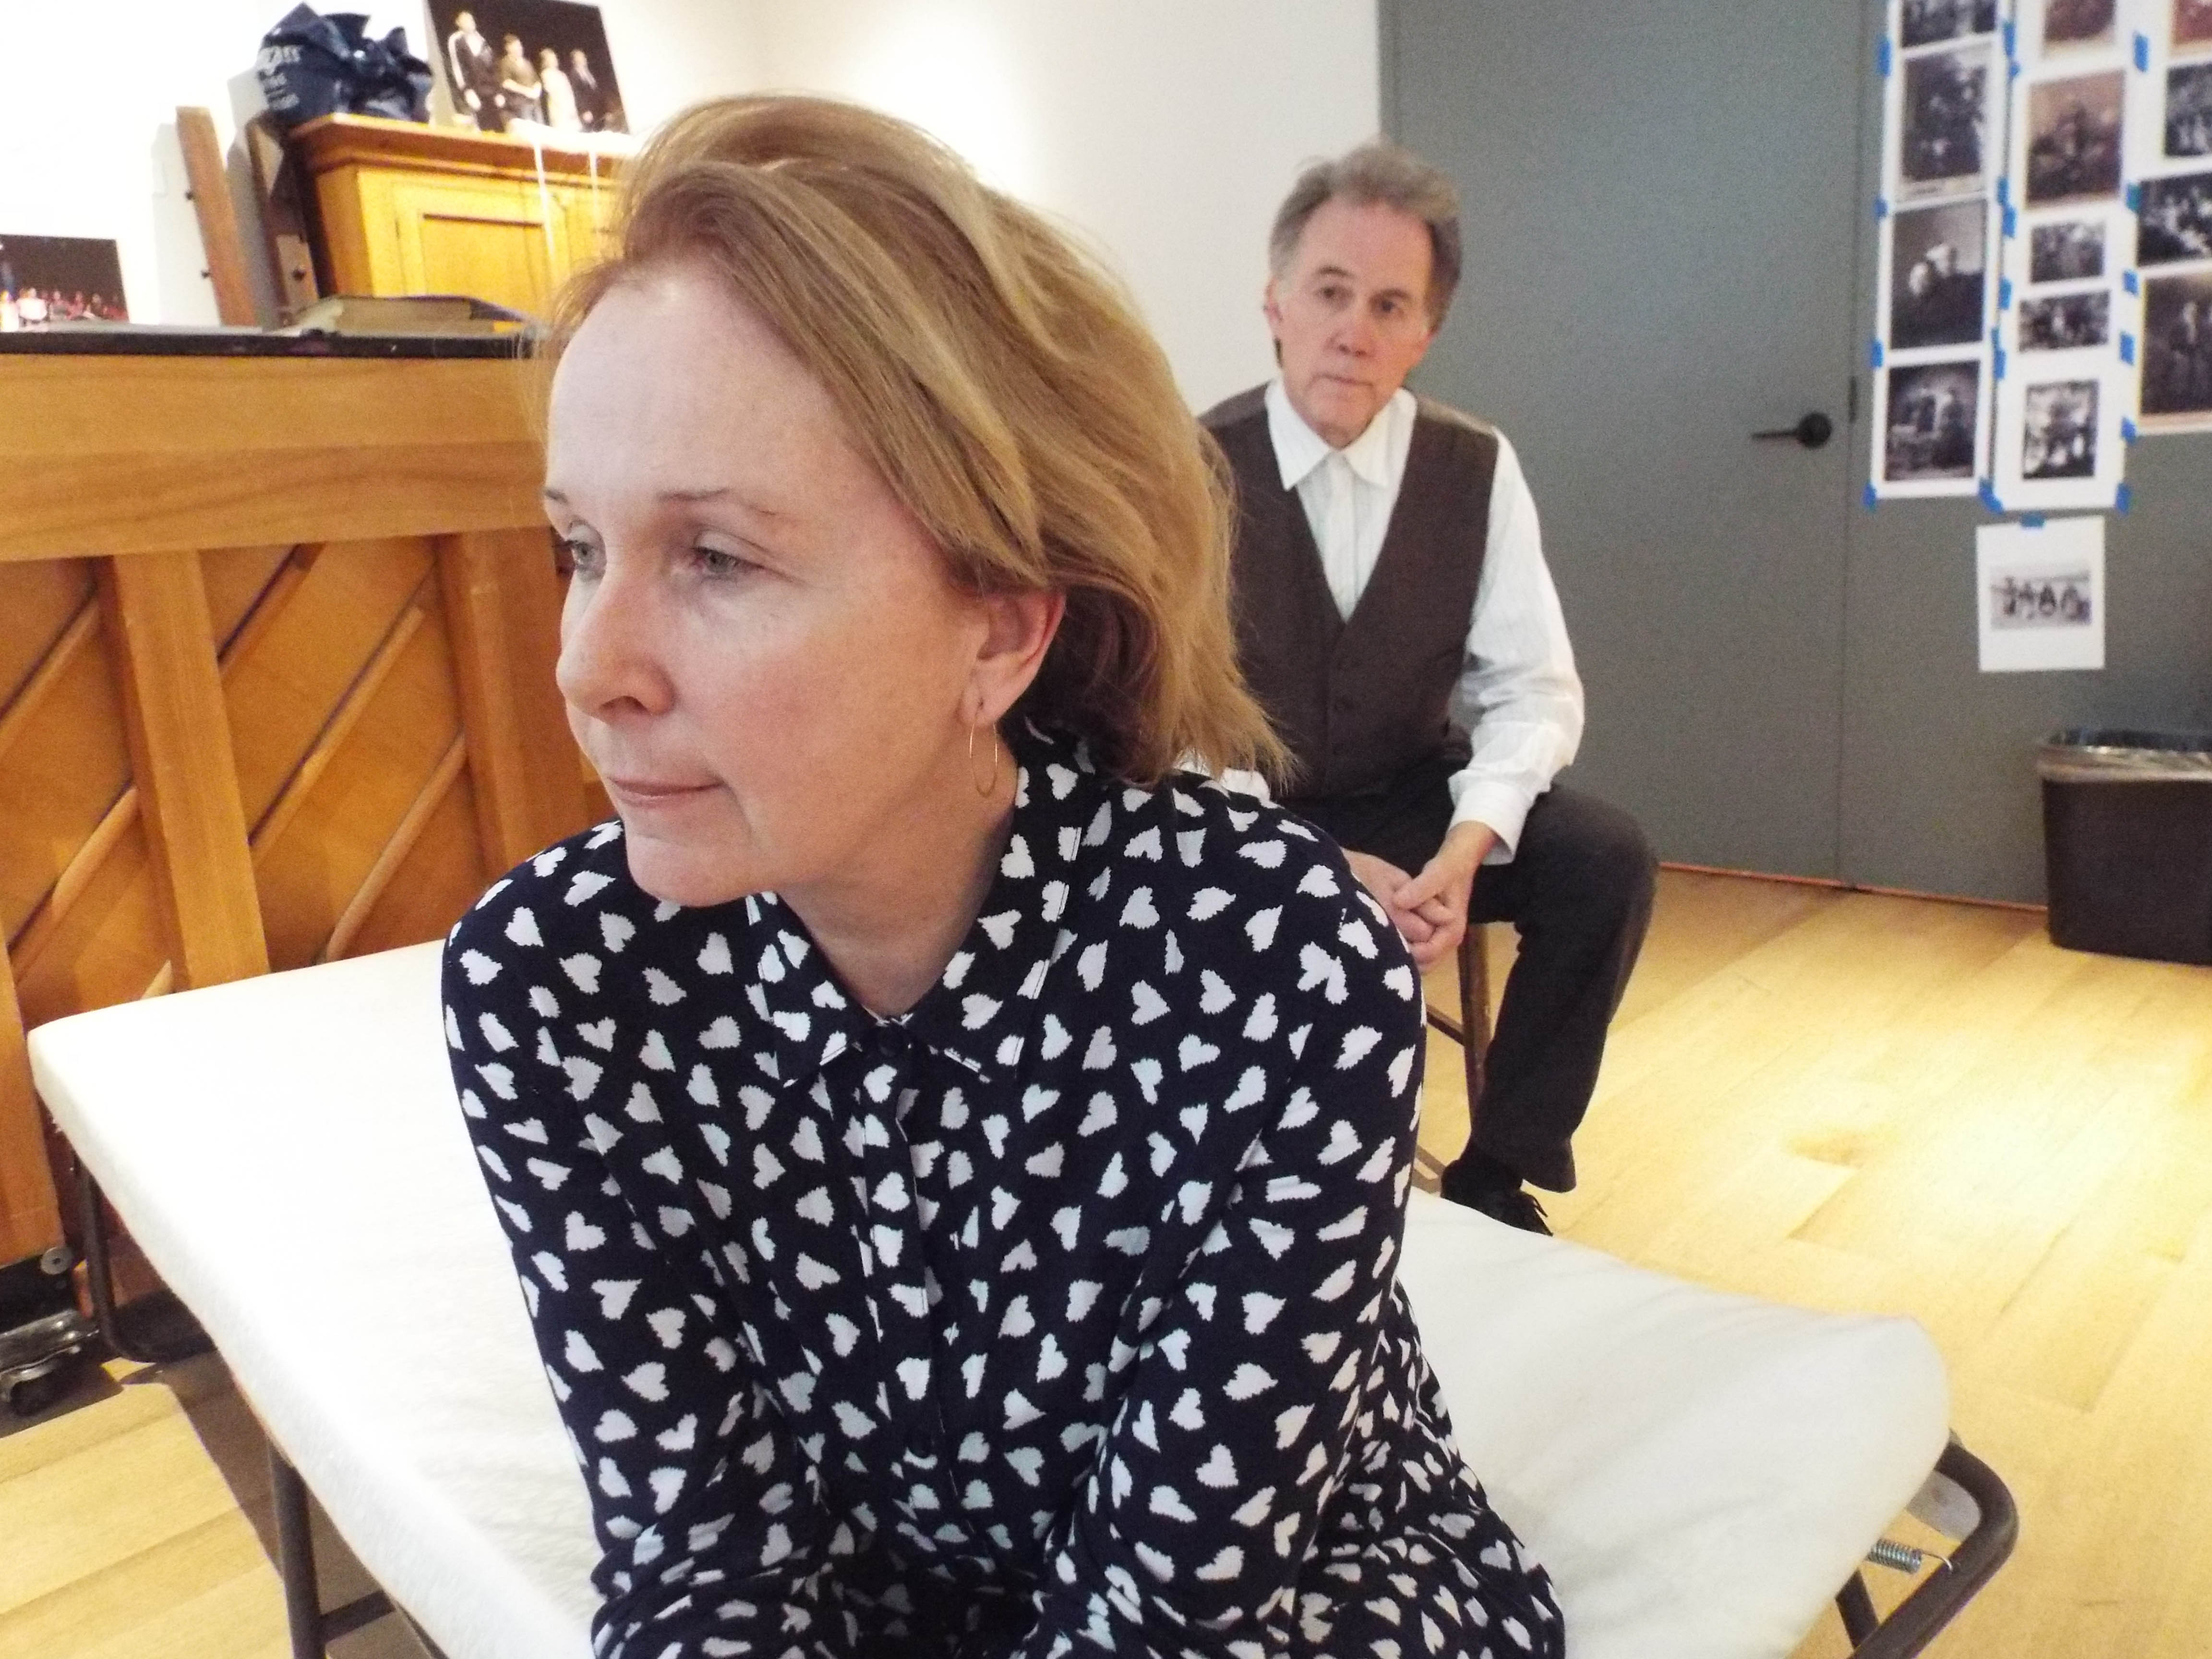 Kate Burton and Boyd Gaines, who play Gretta and Gabriel.